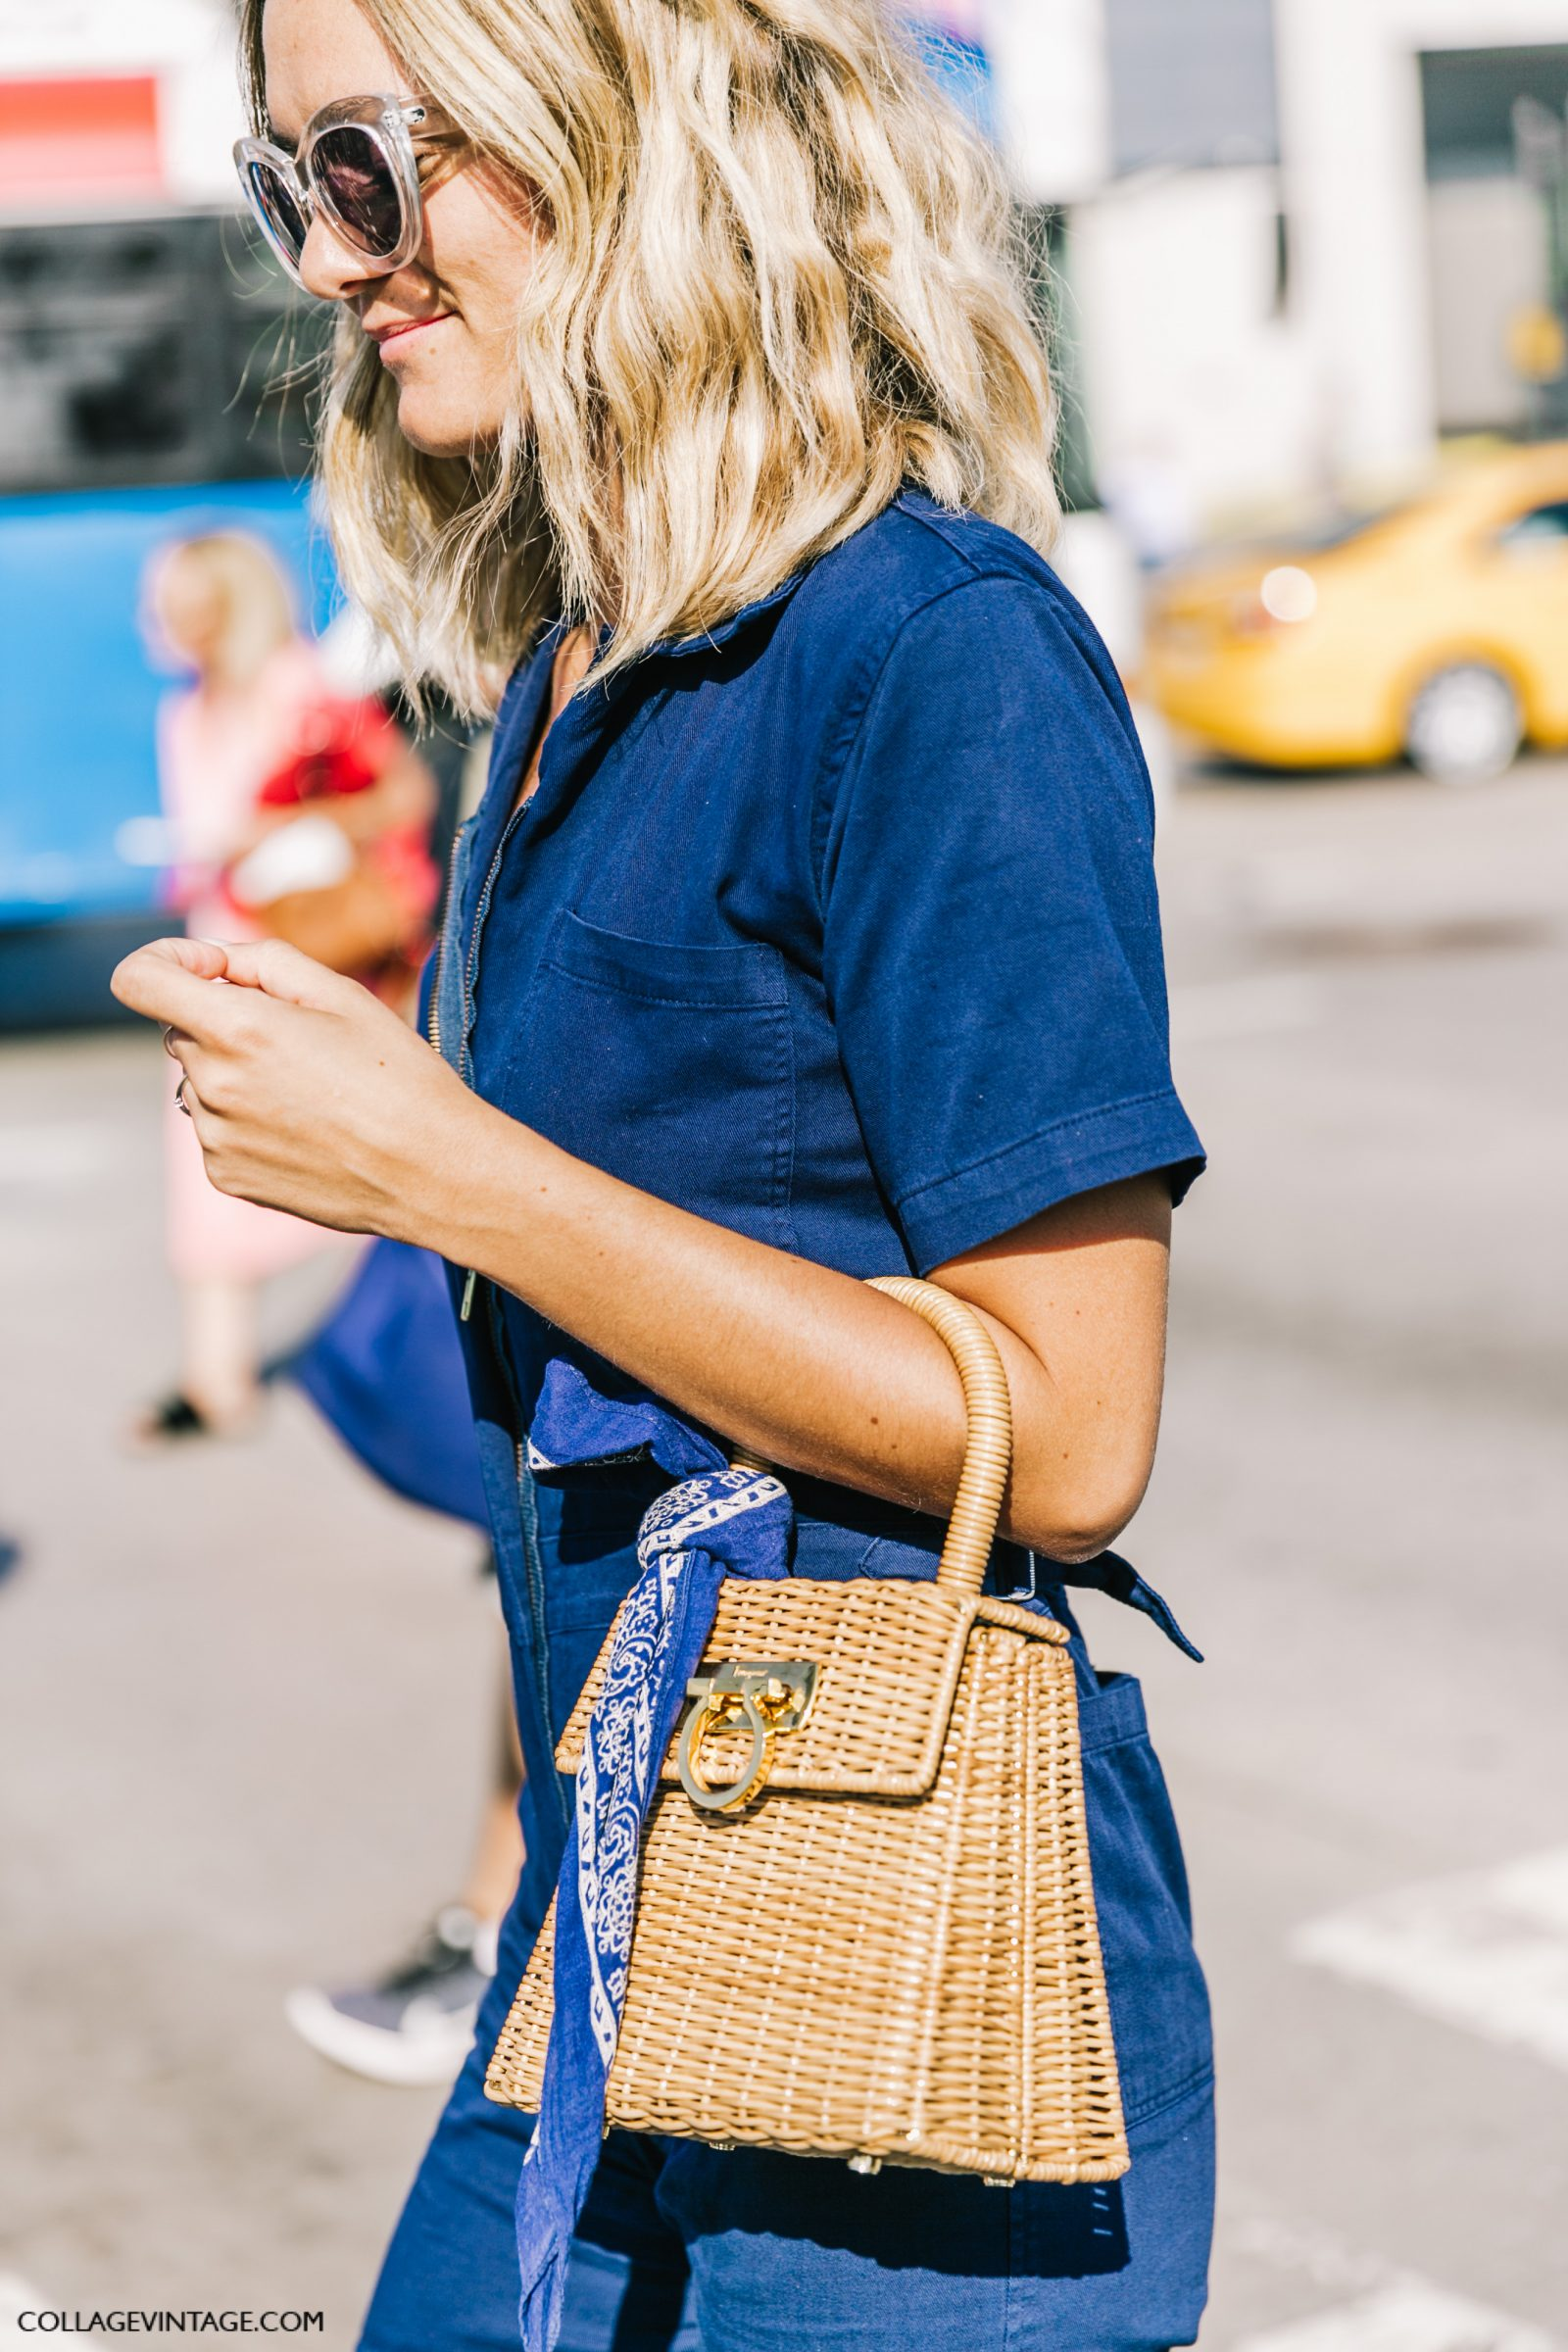 nyfw-new_york_fashion_week_ss17-street_style-outfits-collage_vintage-vintage-mansur_gavriel-rodarte-coach-146